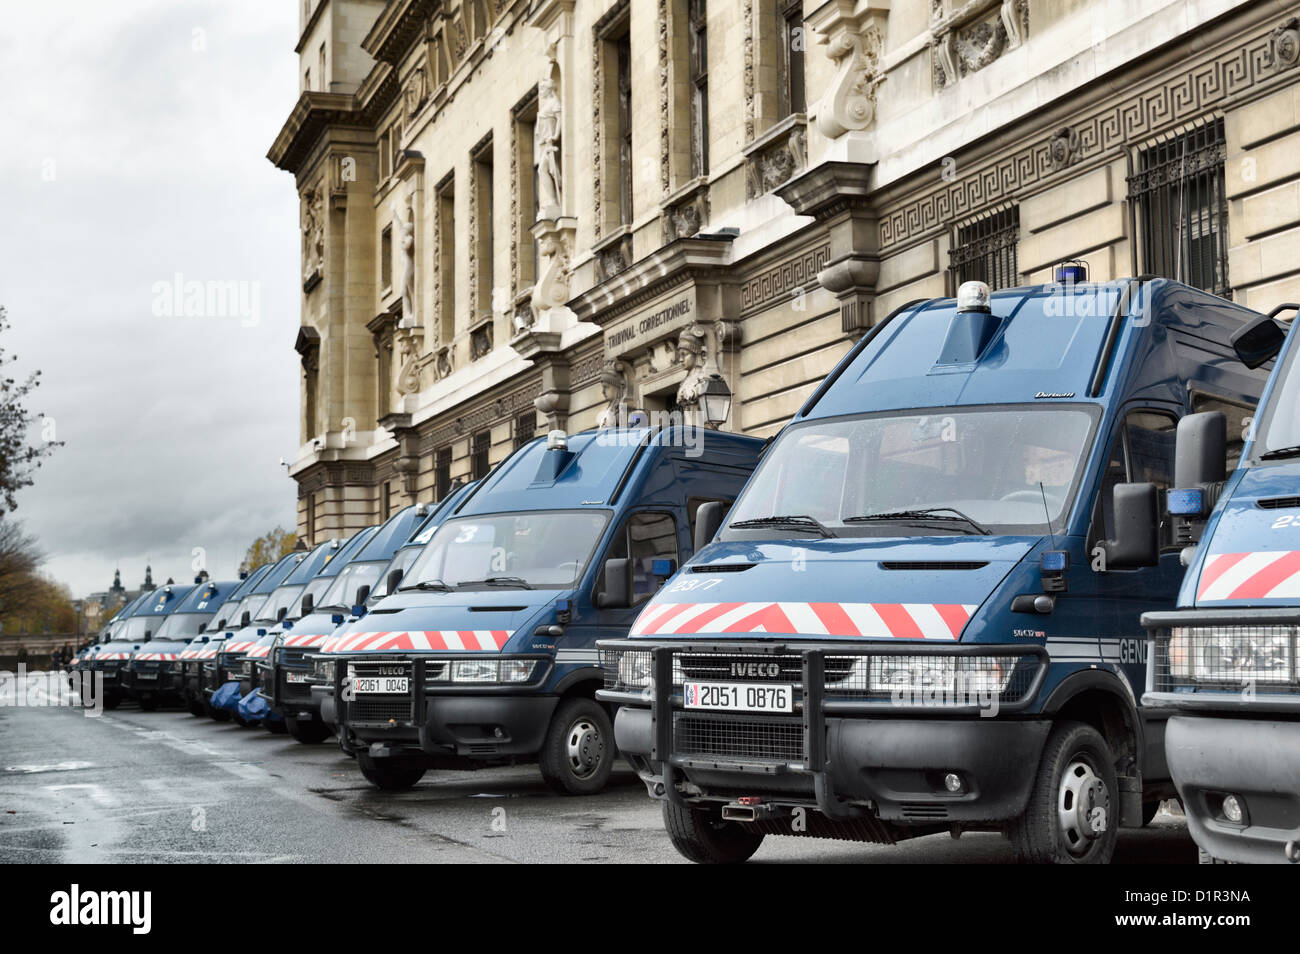 gendarmerie nationale stock photos gendarmerie nationale stock images alamy. Black Bedroom Furniture Sets. Home Design Ideas